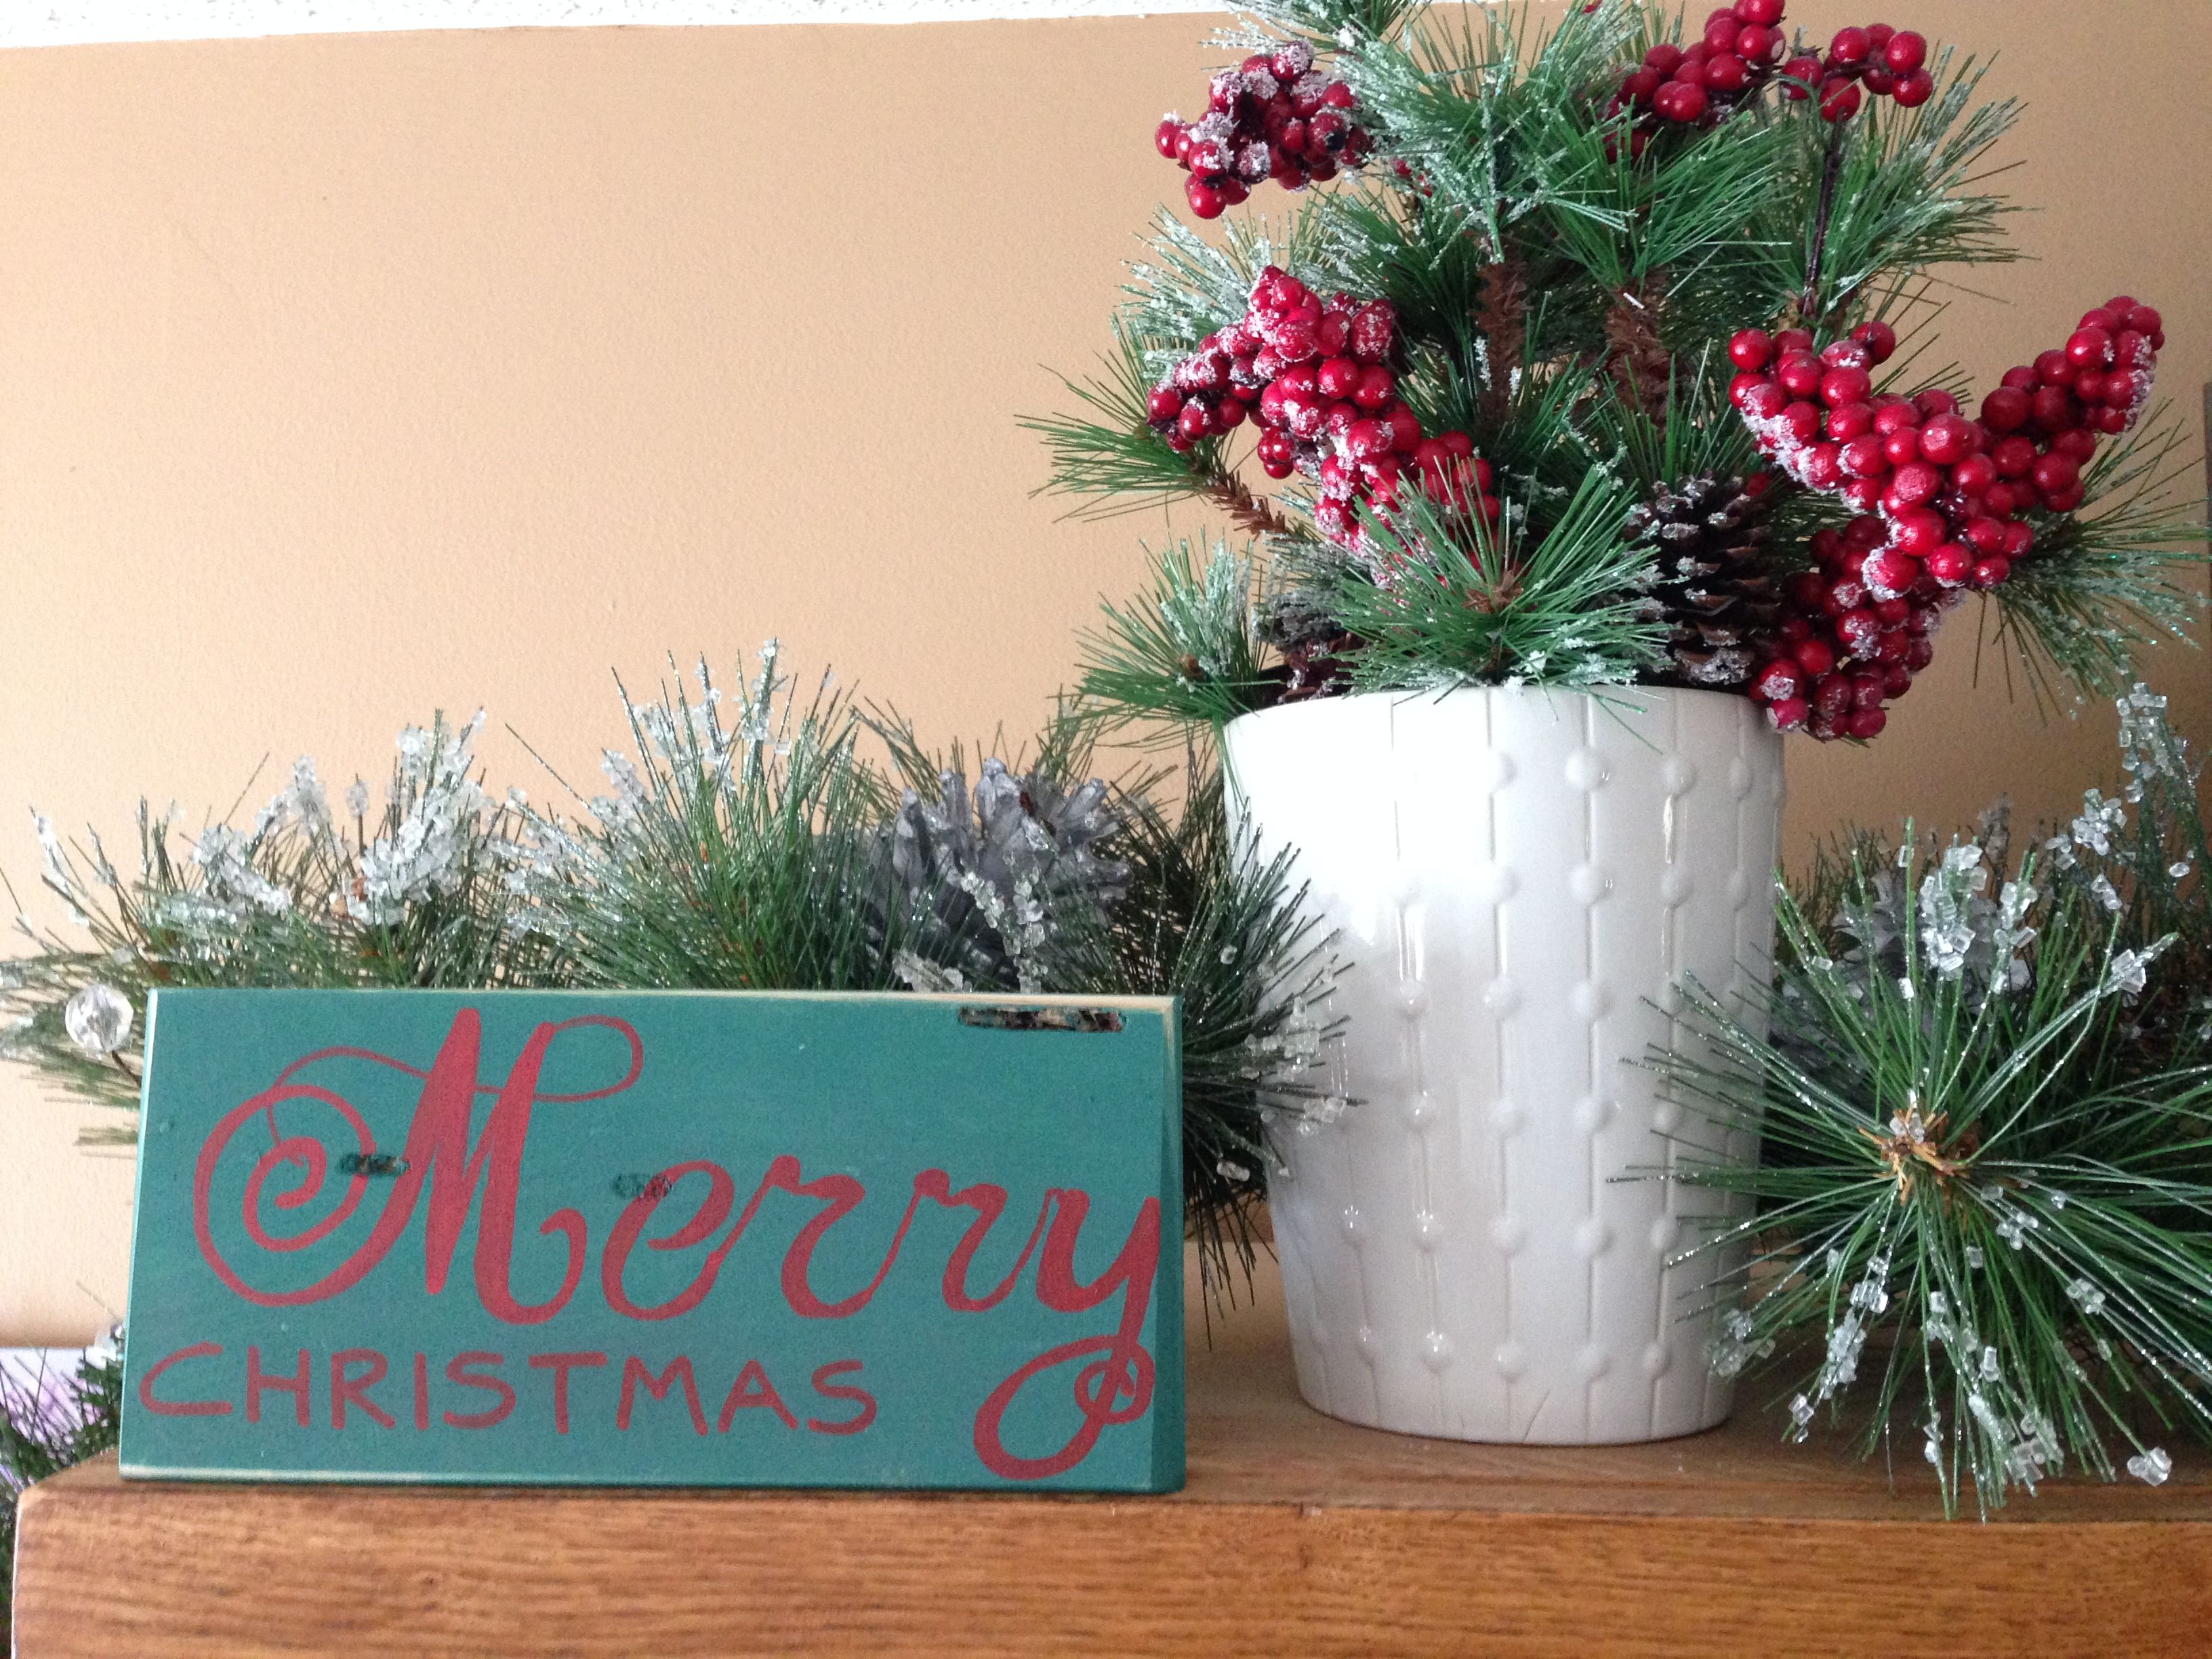 merry Christmas - wood art - home decor etsy.com.shop/ShareHisBlessings  Thanks for viewing my work! I can customize all my projects to fit your style. Let me know if you are looking for a certain color, size or phrase – I'd be happy to make it just for you! Stay Blessed..